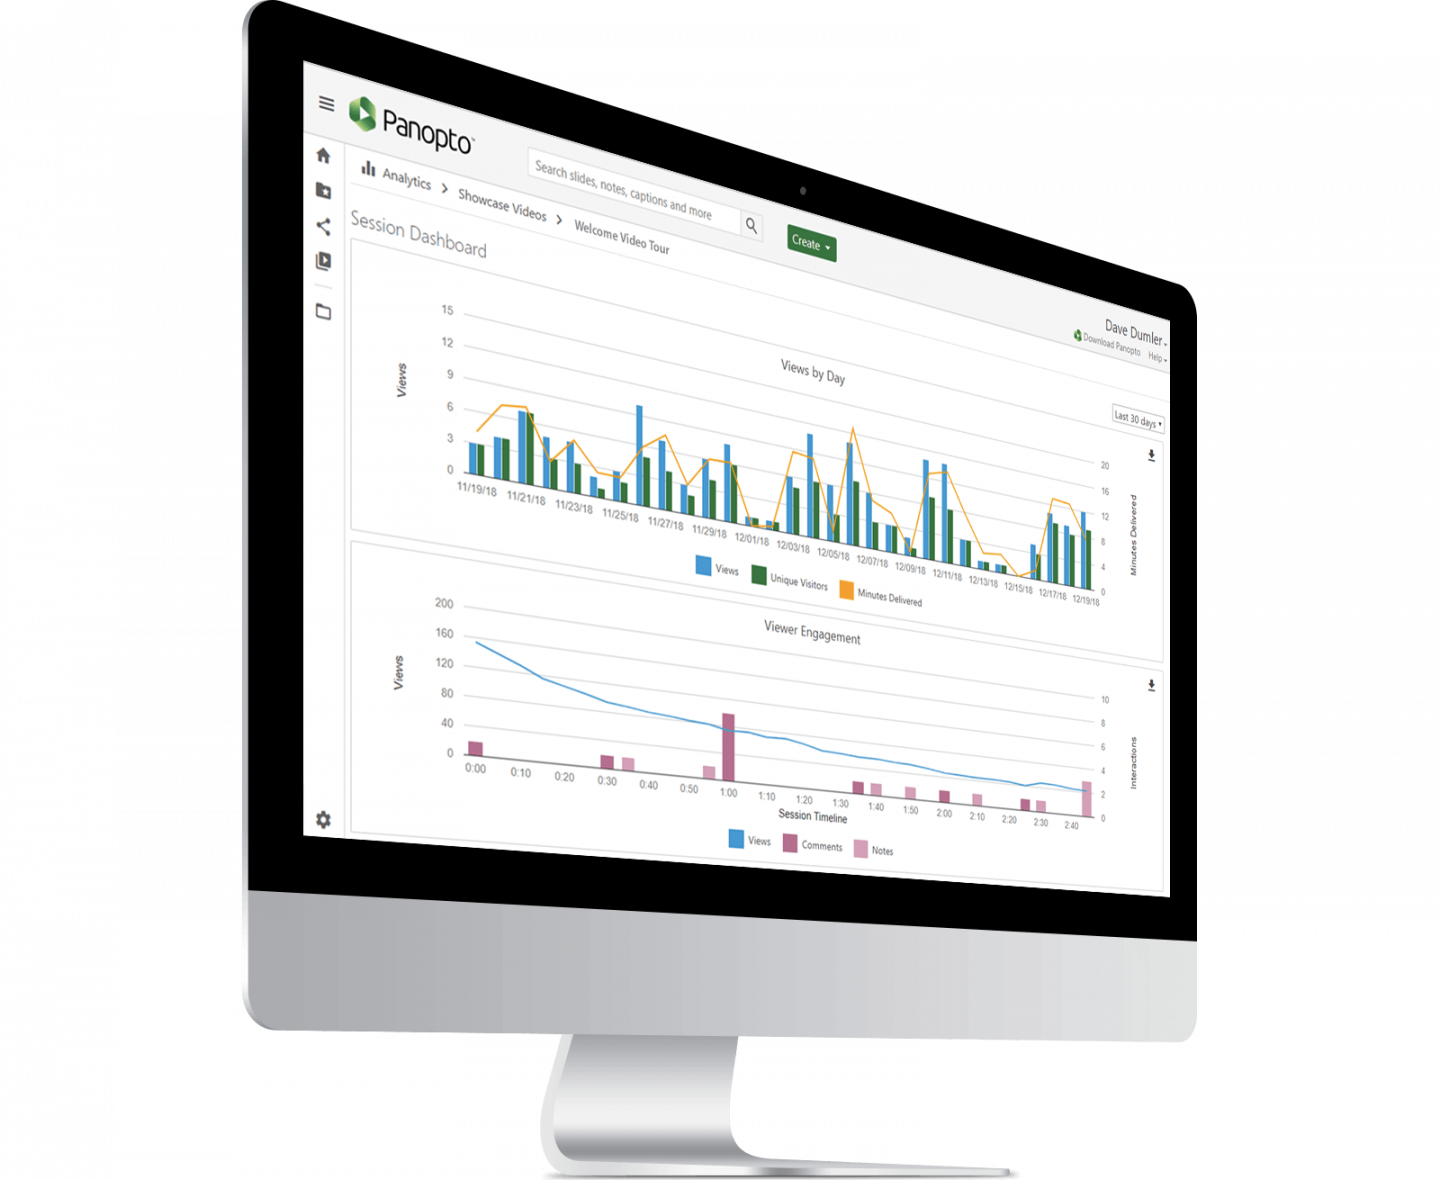 Panopto's video training software gives in-depth analytics on employee video engagement